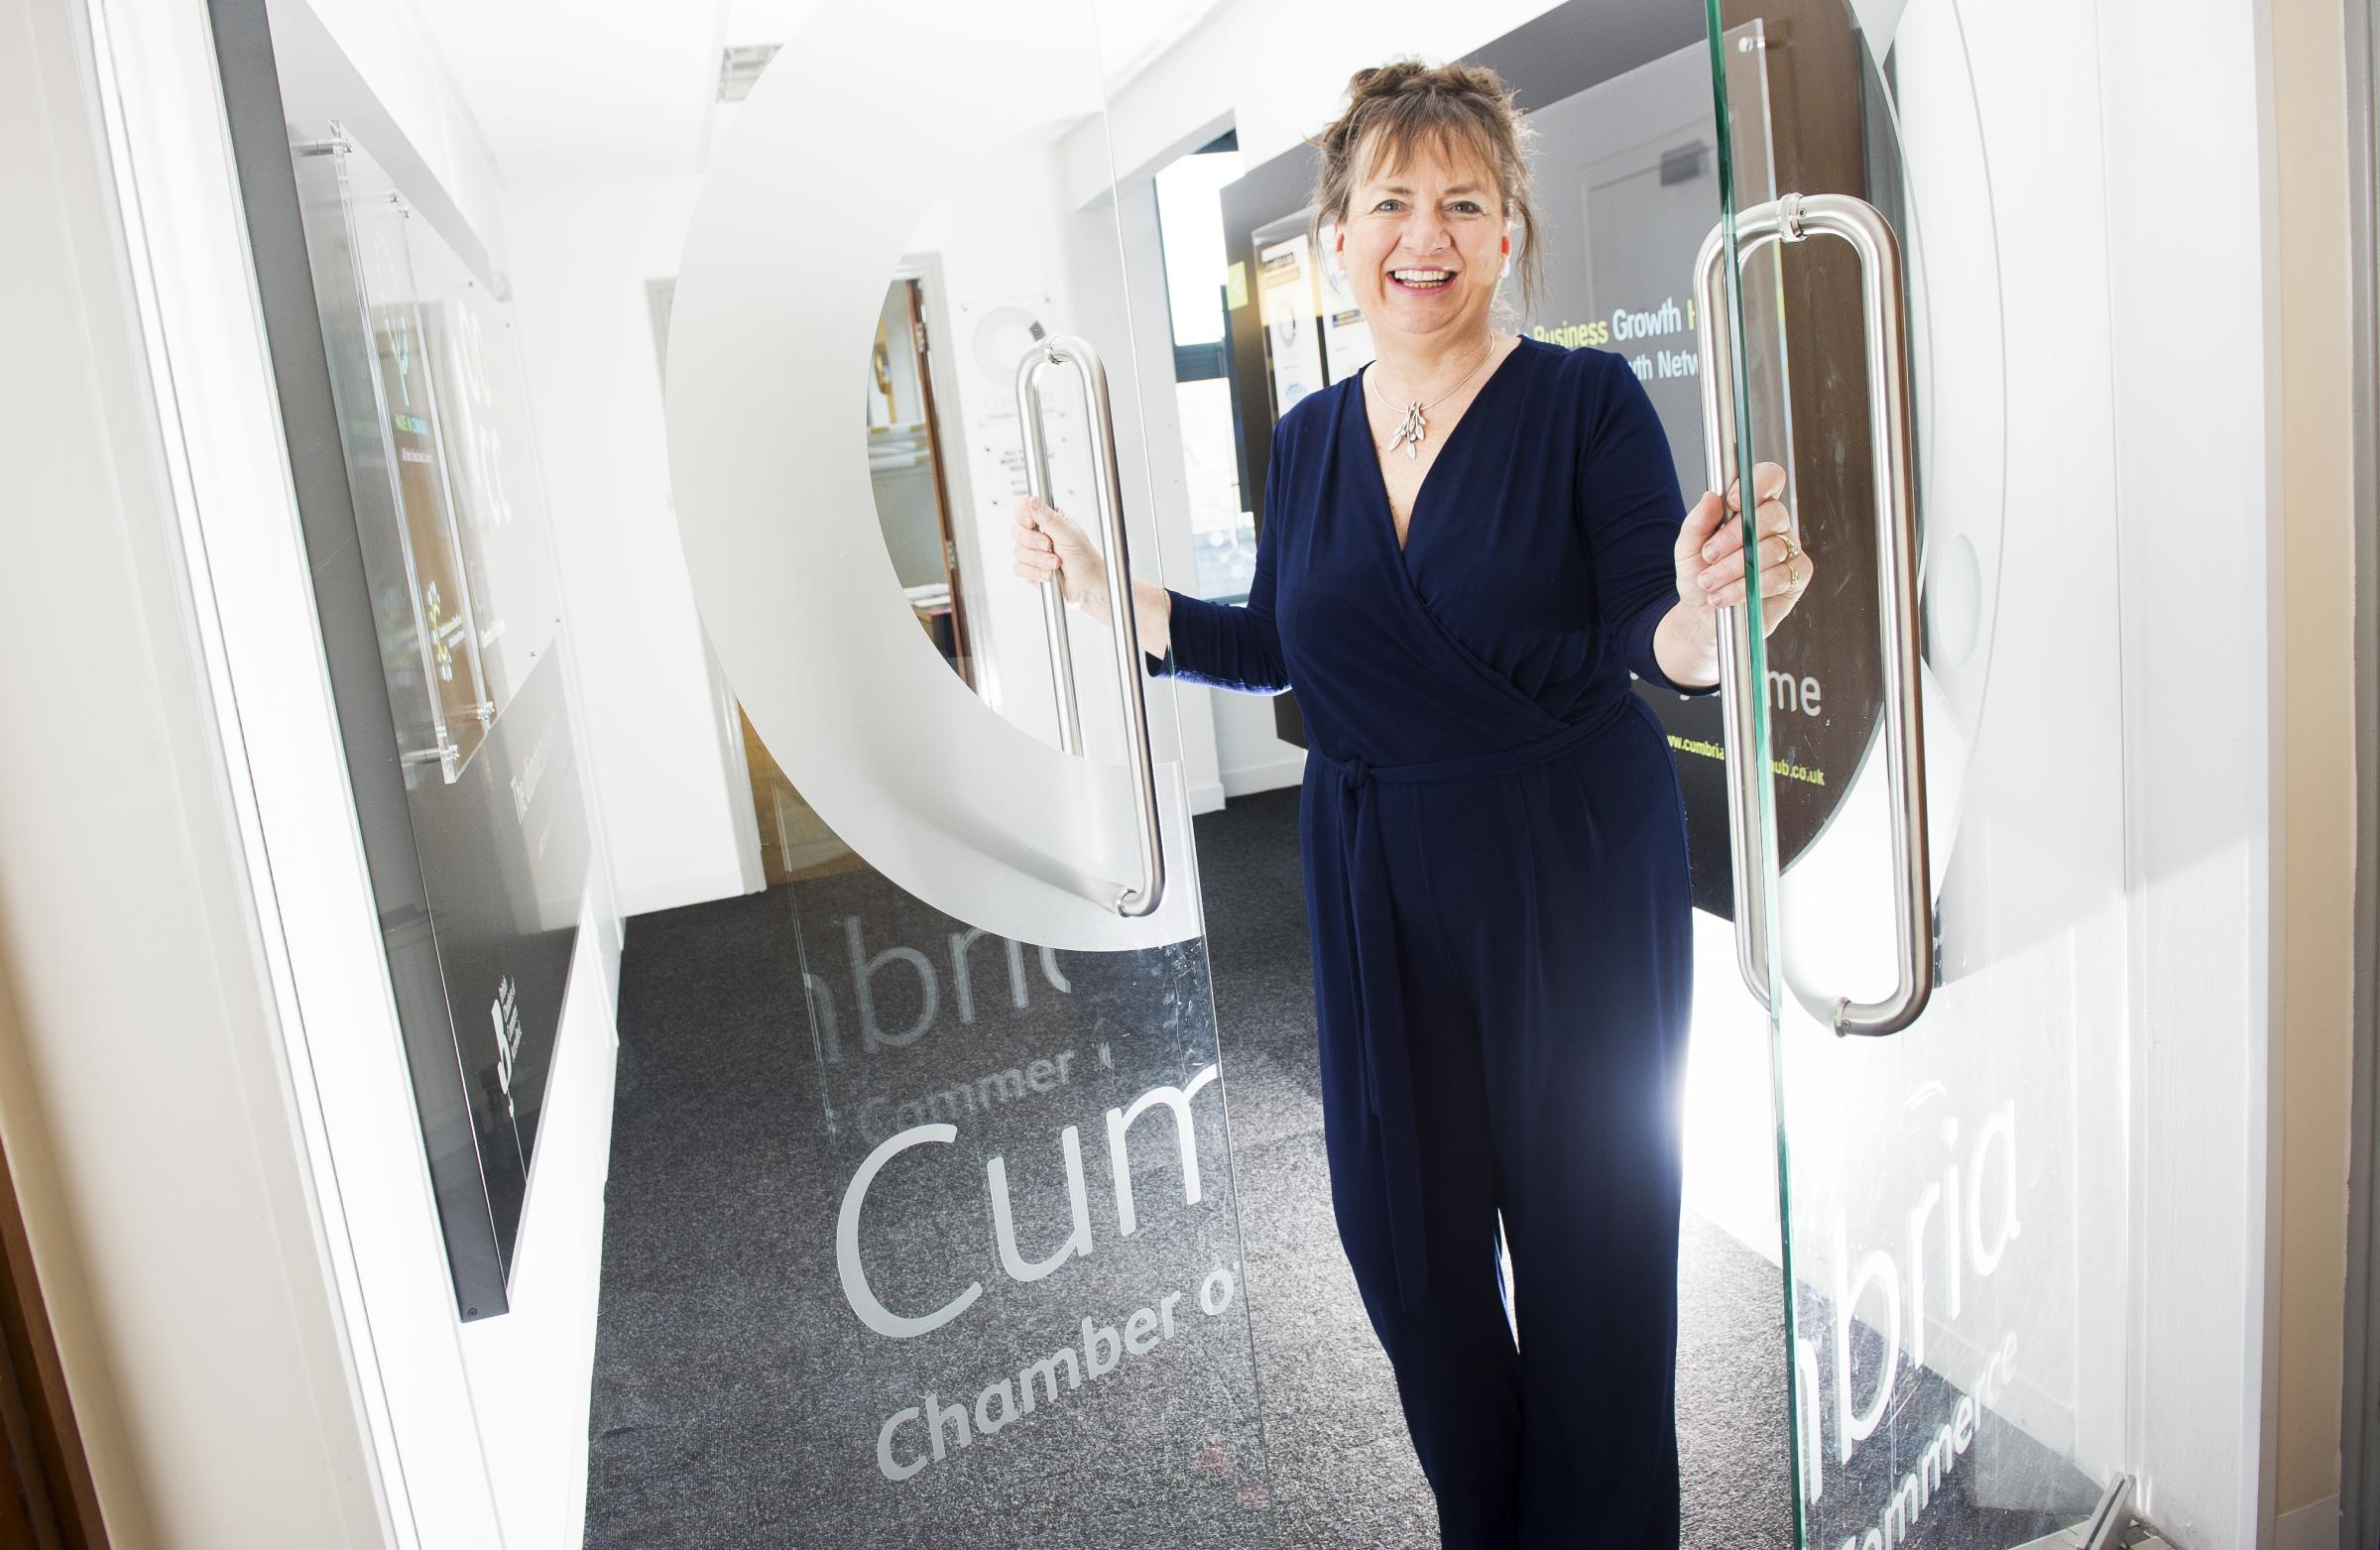 Suzanne Caldwell, of Cumbria Chamber of Commerce